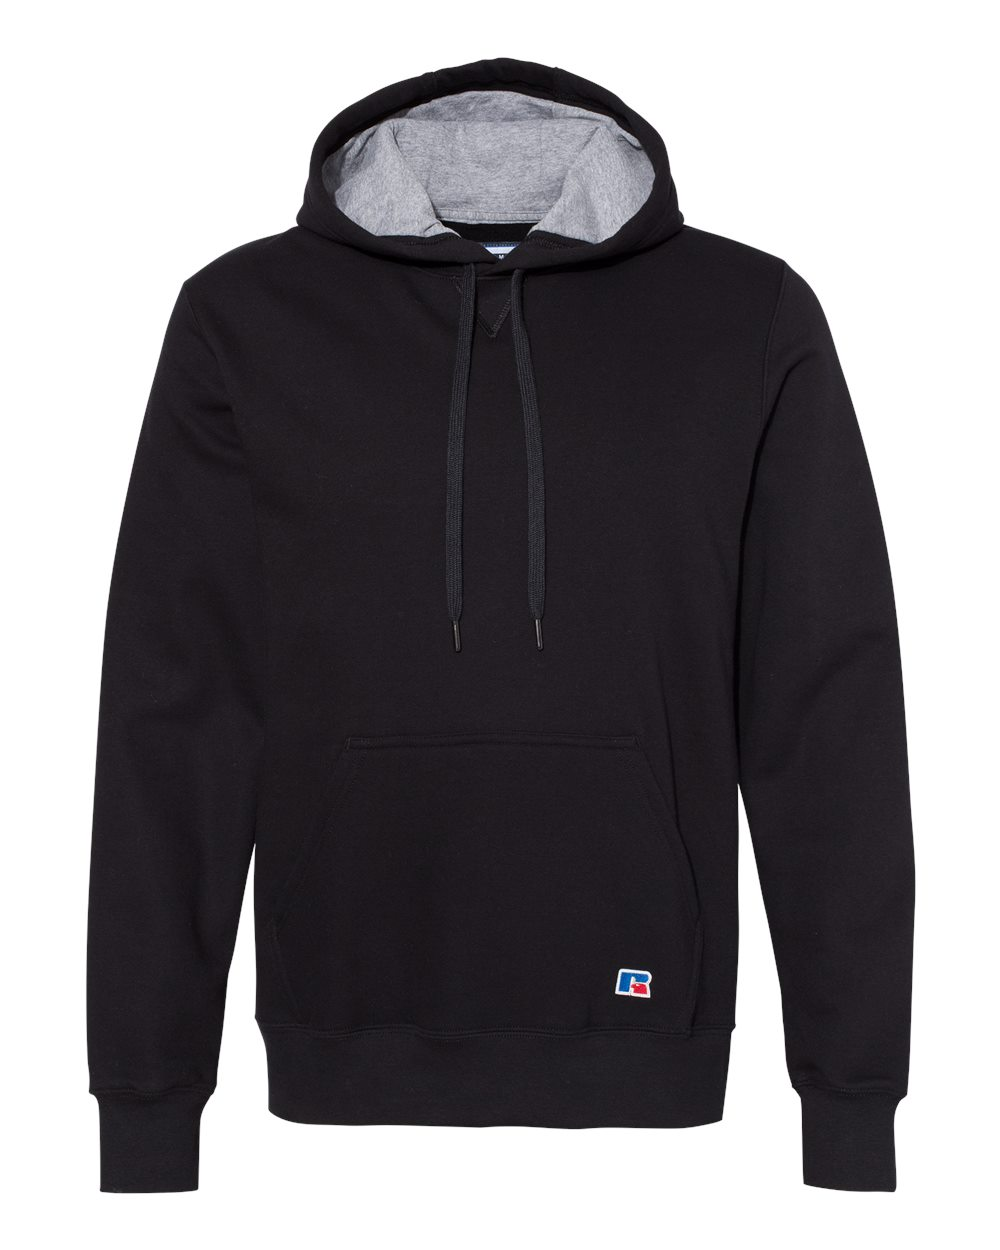 Russell-Athletic-Mens-Cotton-Rich-Fleece-Hooded-Sweatshirt-82ONSM-up-to-3XL miniature 9